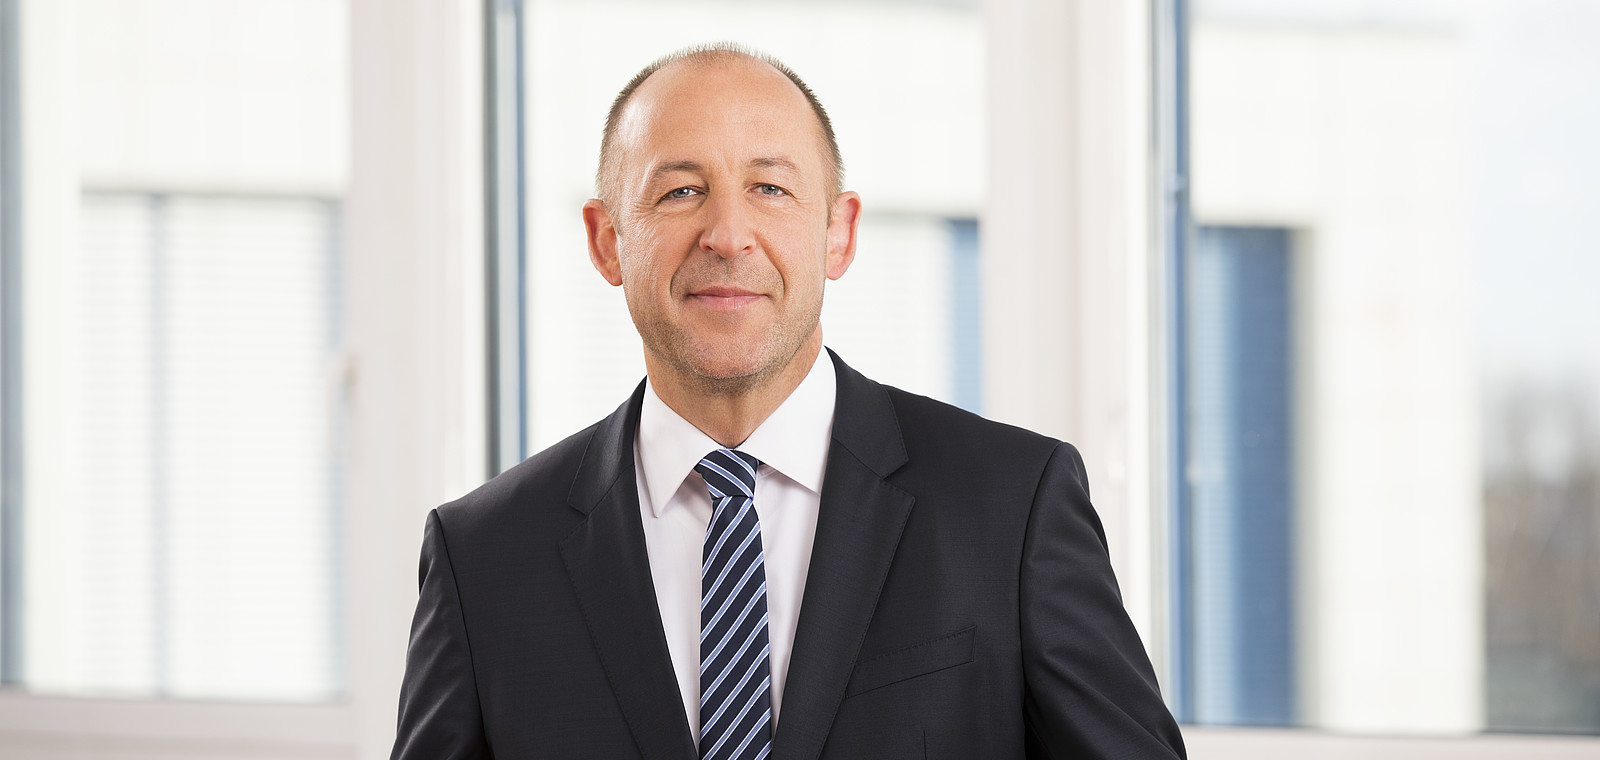 Christoph Ritzkat is the new majority shareholder of the smart building pioneer.